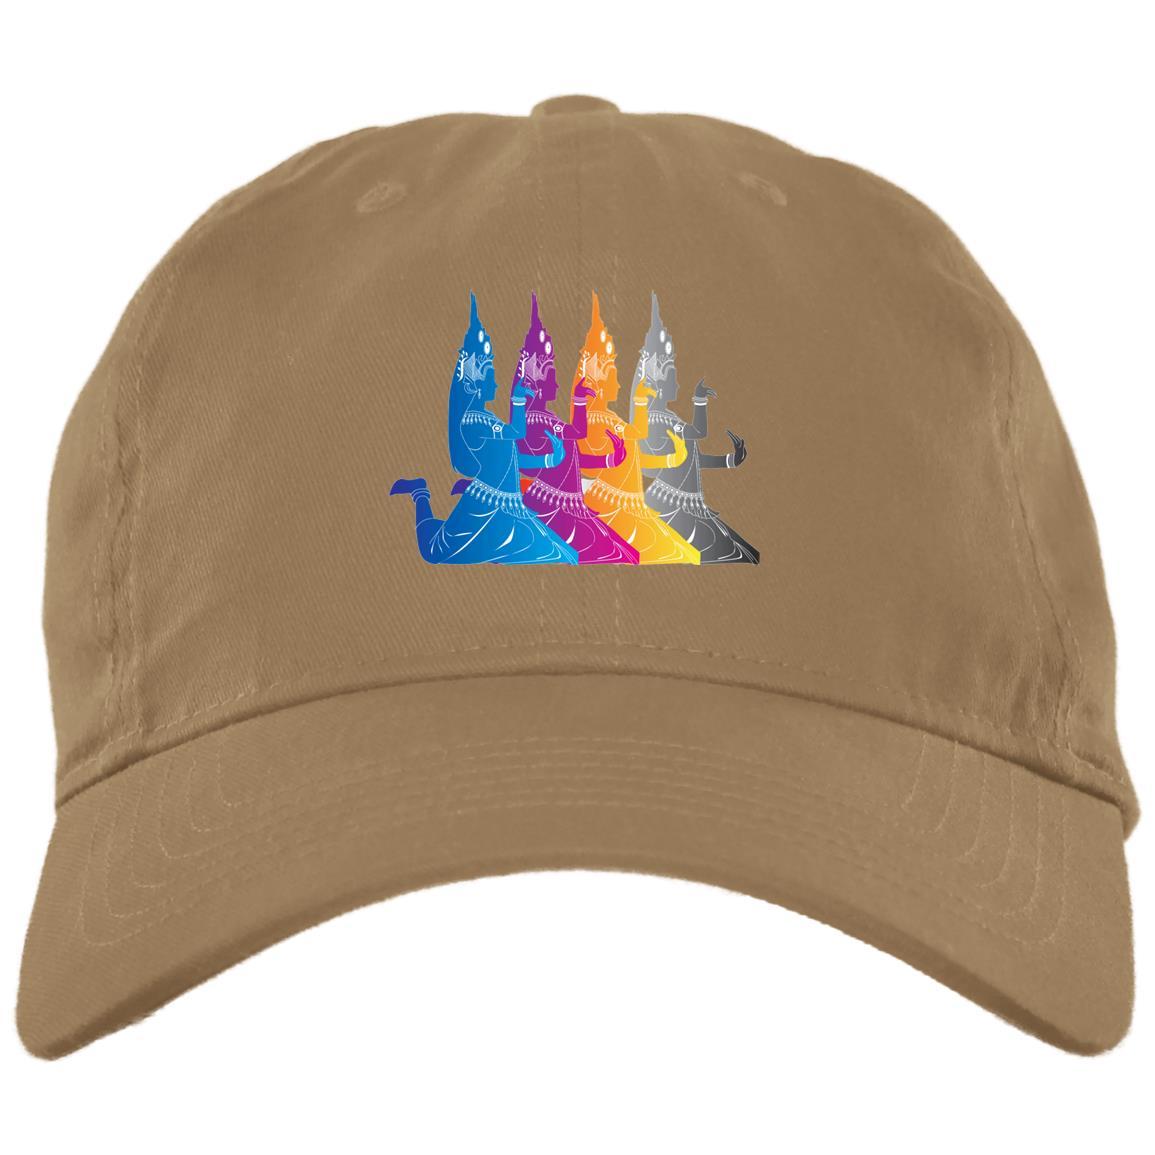 khmer Apsara Dance BX001 Brushed Twill Unstructured Dad Cap